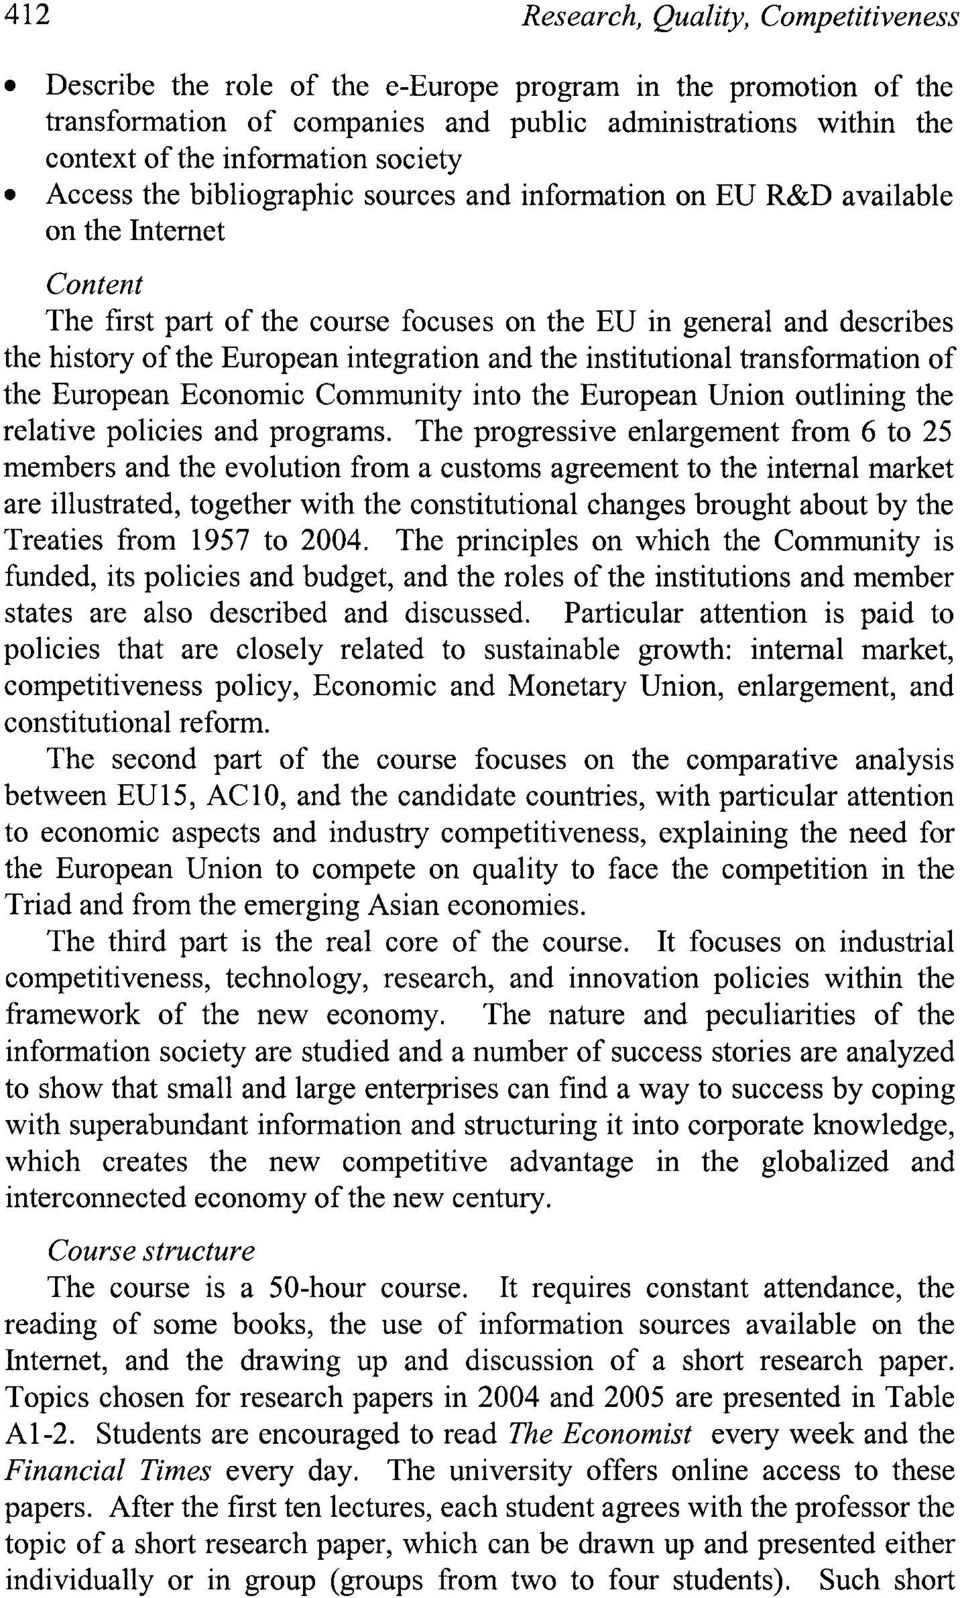 European integration and the institutional transformation of the European Economic Community into the European Union outlining the relative policies and programs.